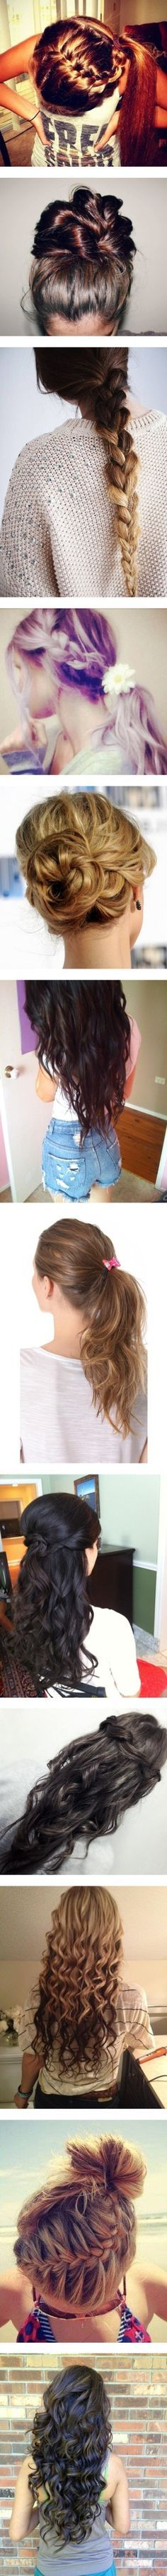 best athlete hairstyles images on pinterest